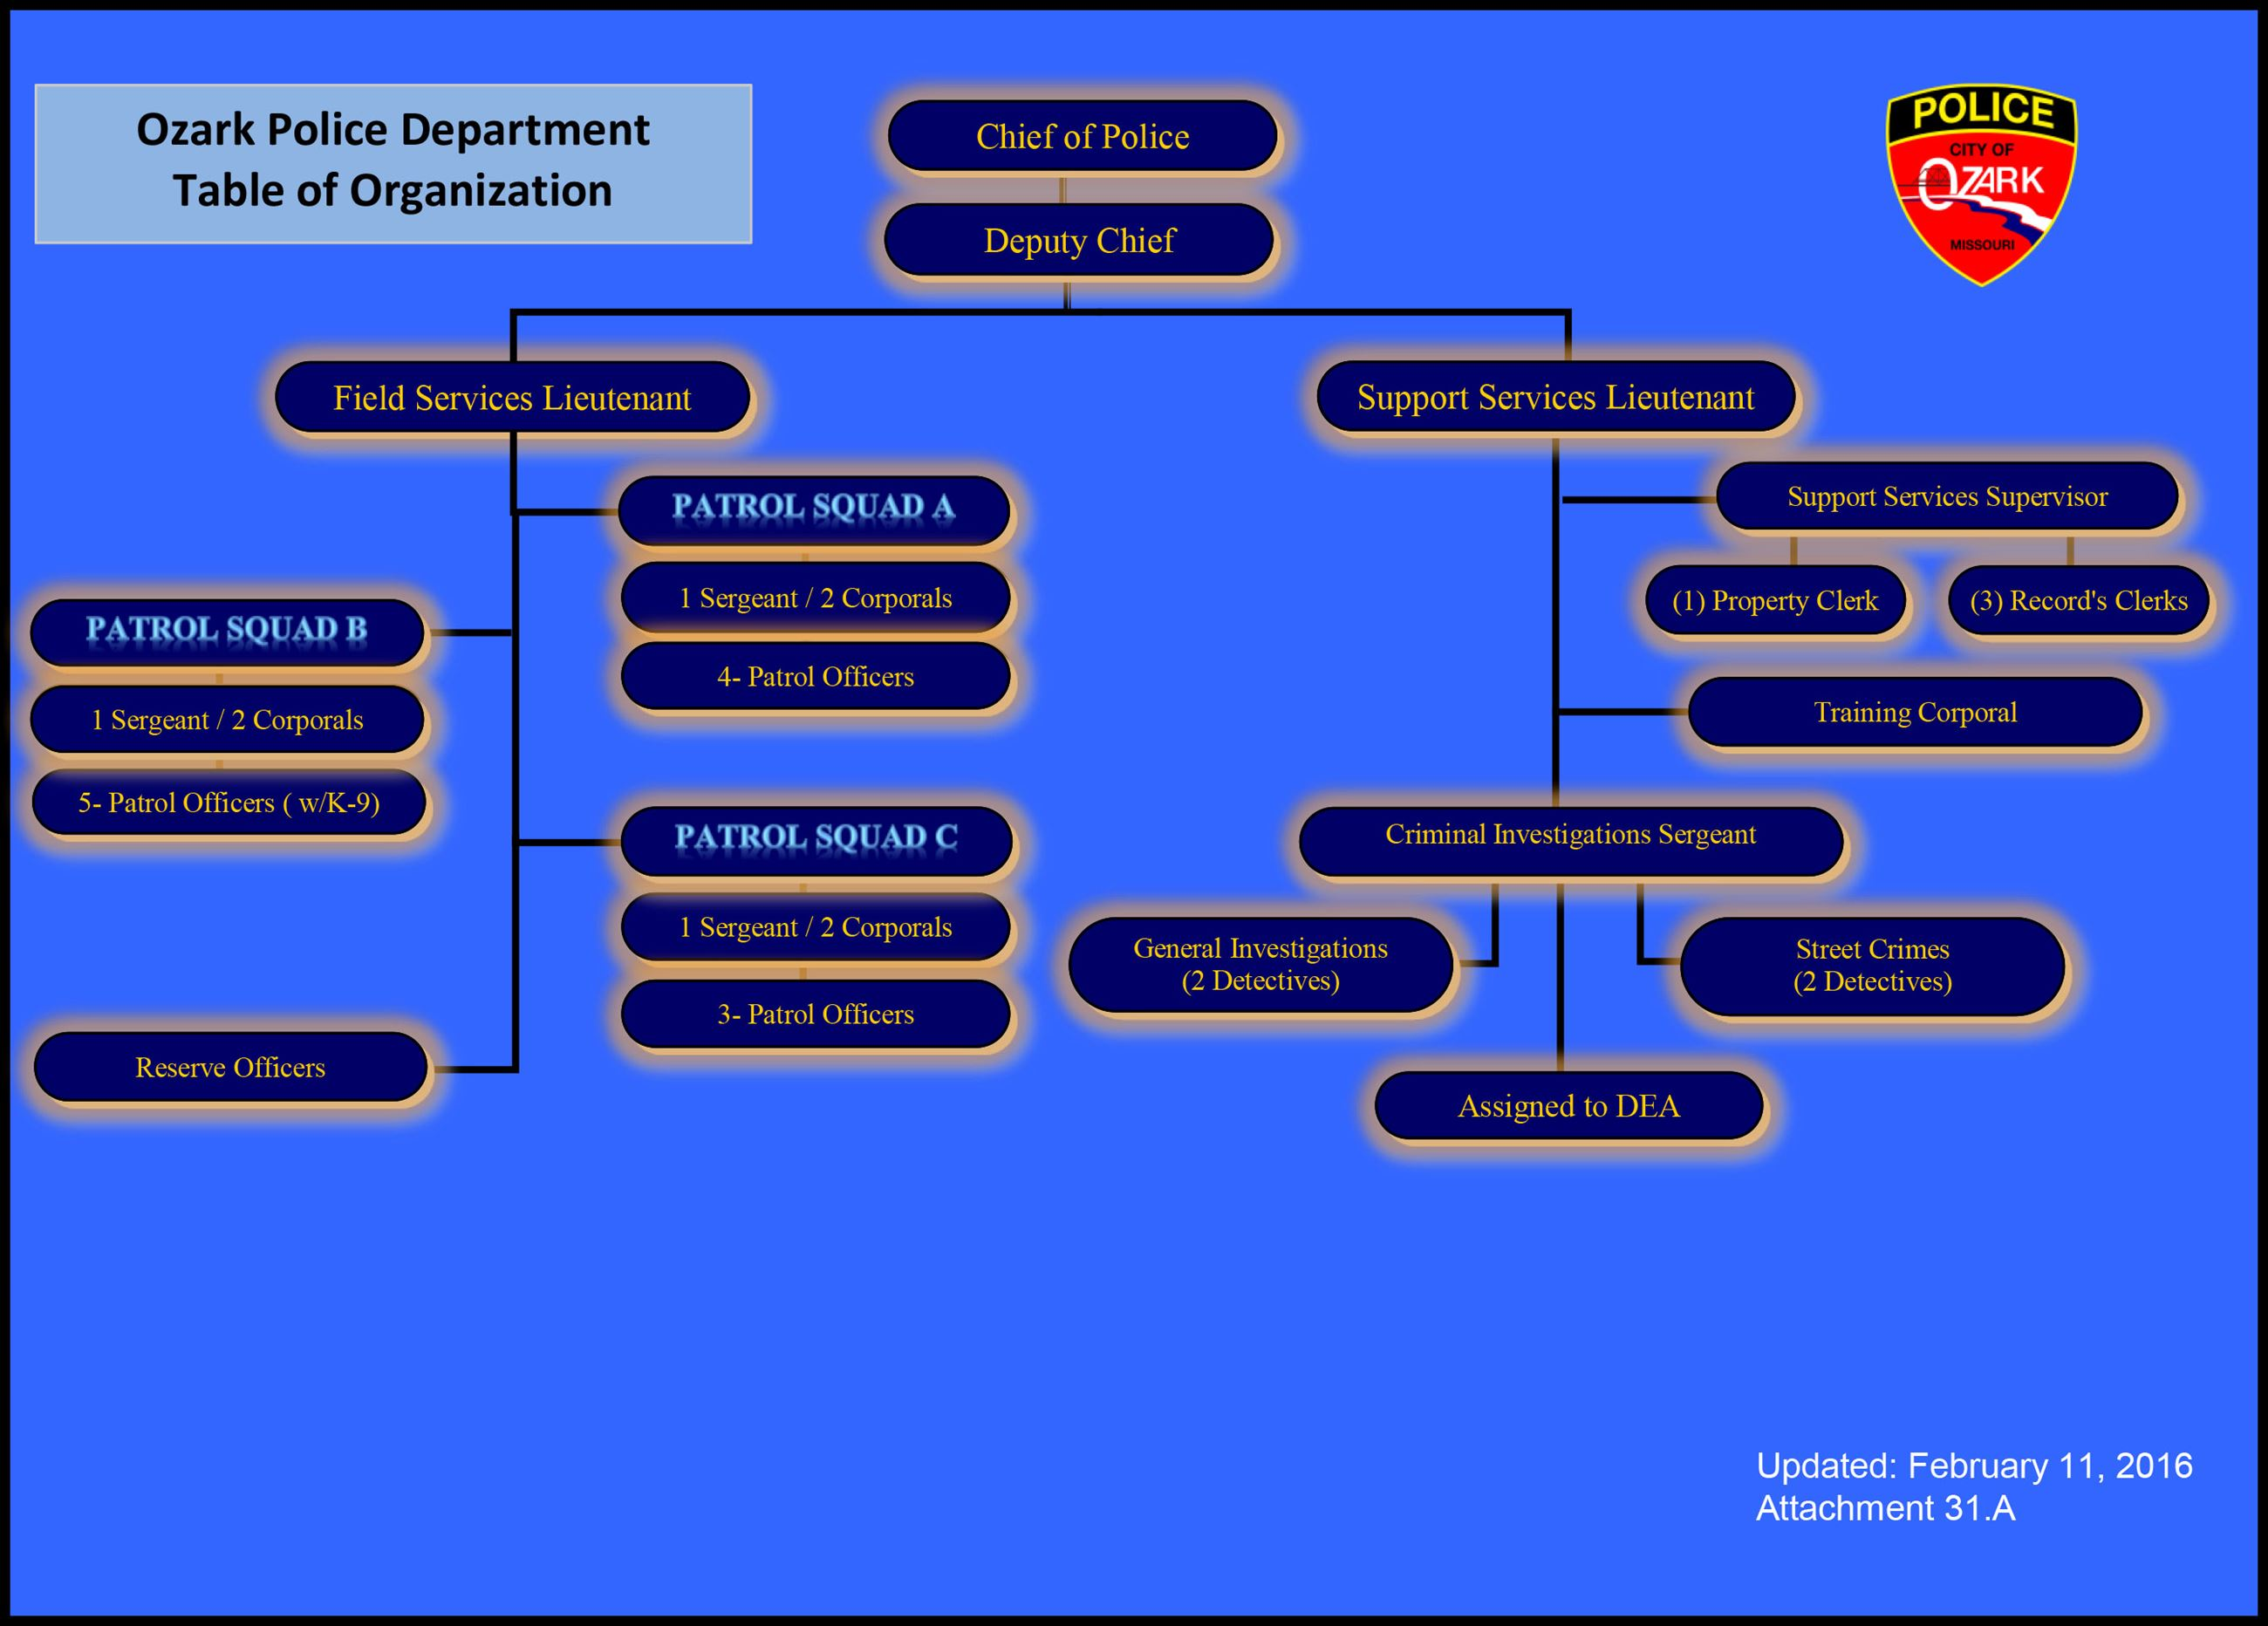 Ozark Police Department -  Table of Organization